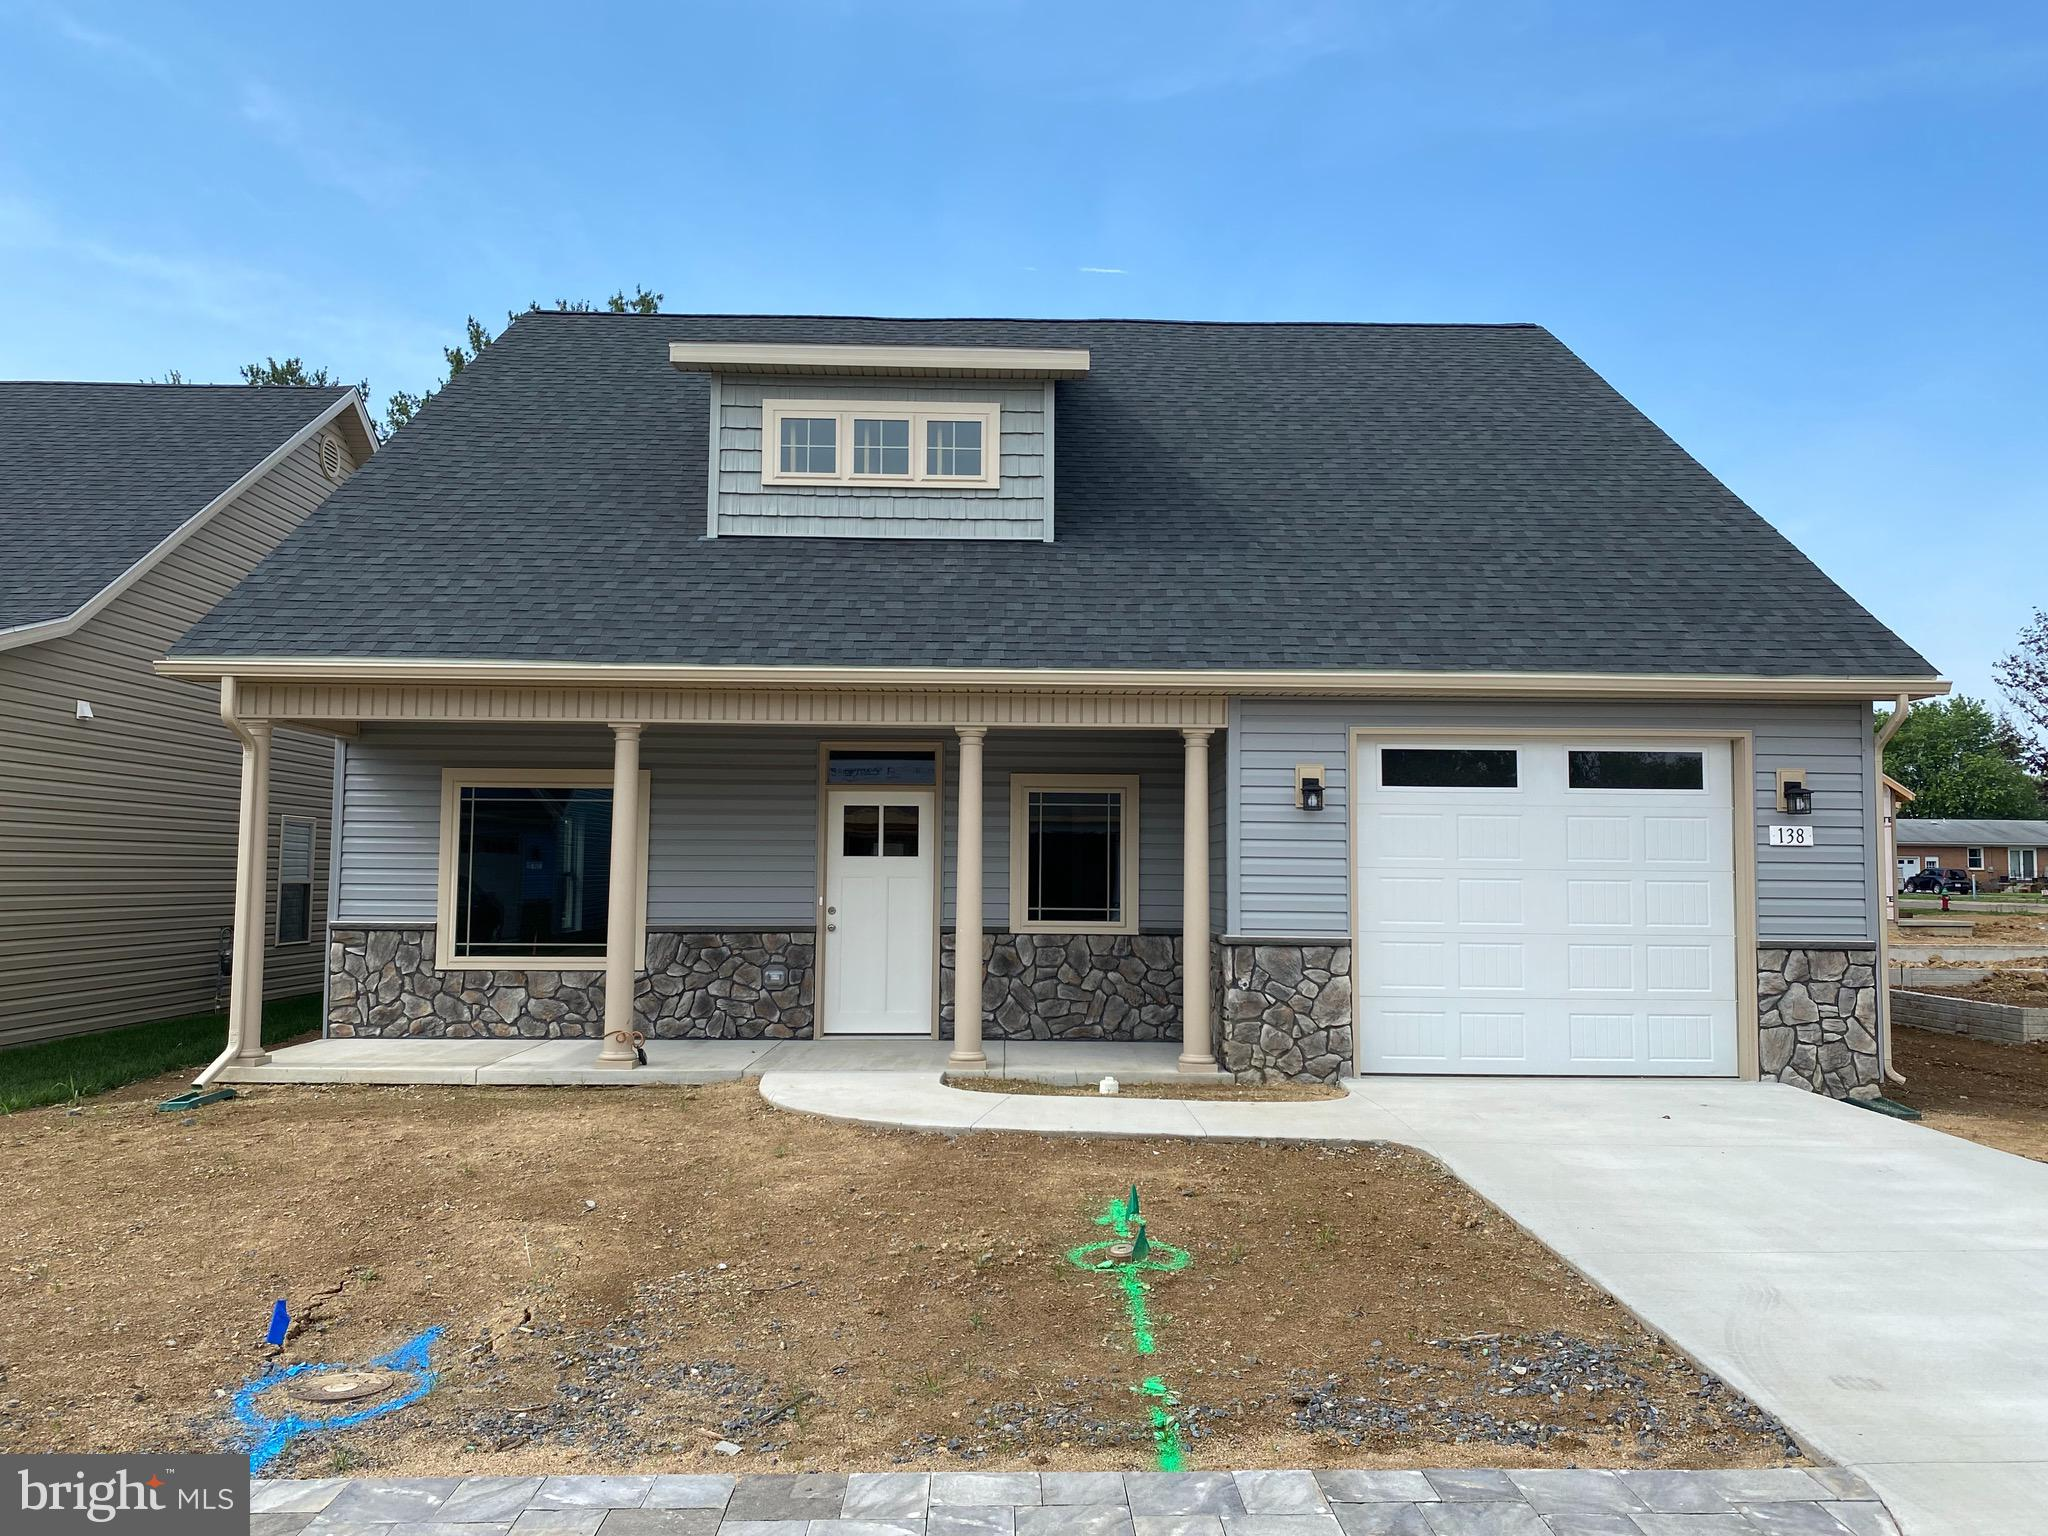 Brand New one level Cottage Style homes in Charming Cottage Glen an Age 55 and Better Community. Two